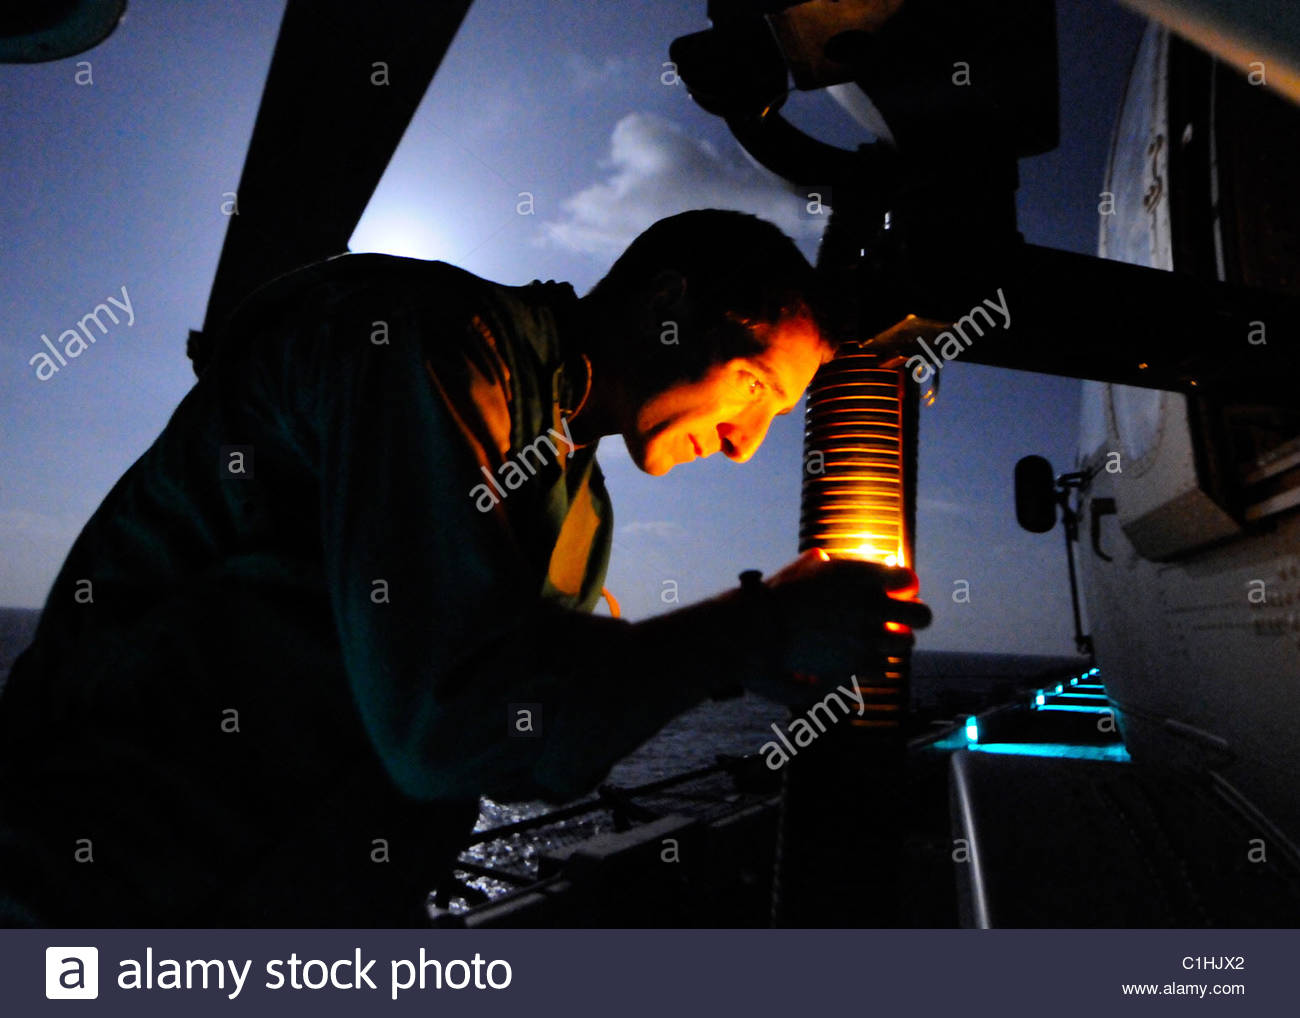 2011 March - US NAVY - Libya - GAL-21 machine gun on an MH-60S Sea Hawk helicopter on the flight deck of amphibious - Stock Image